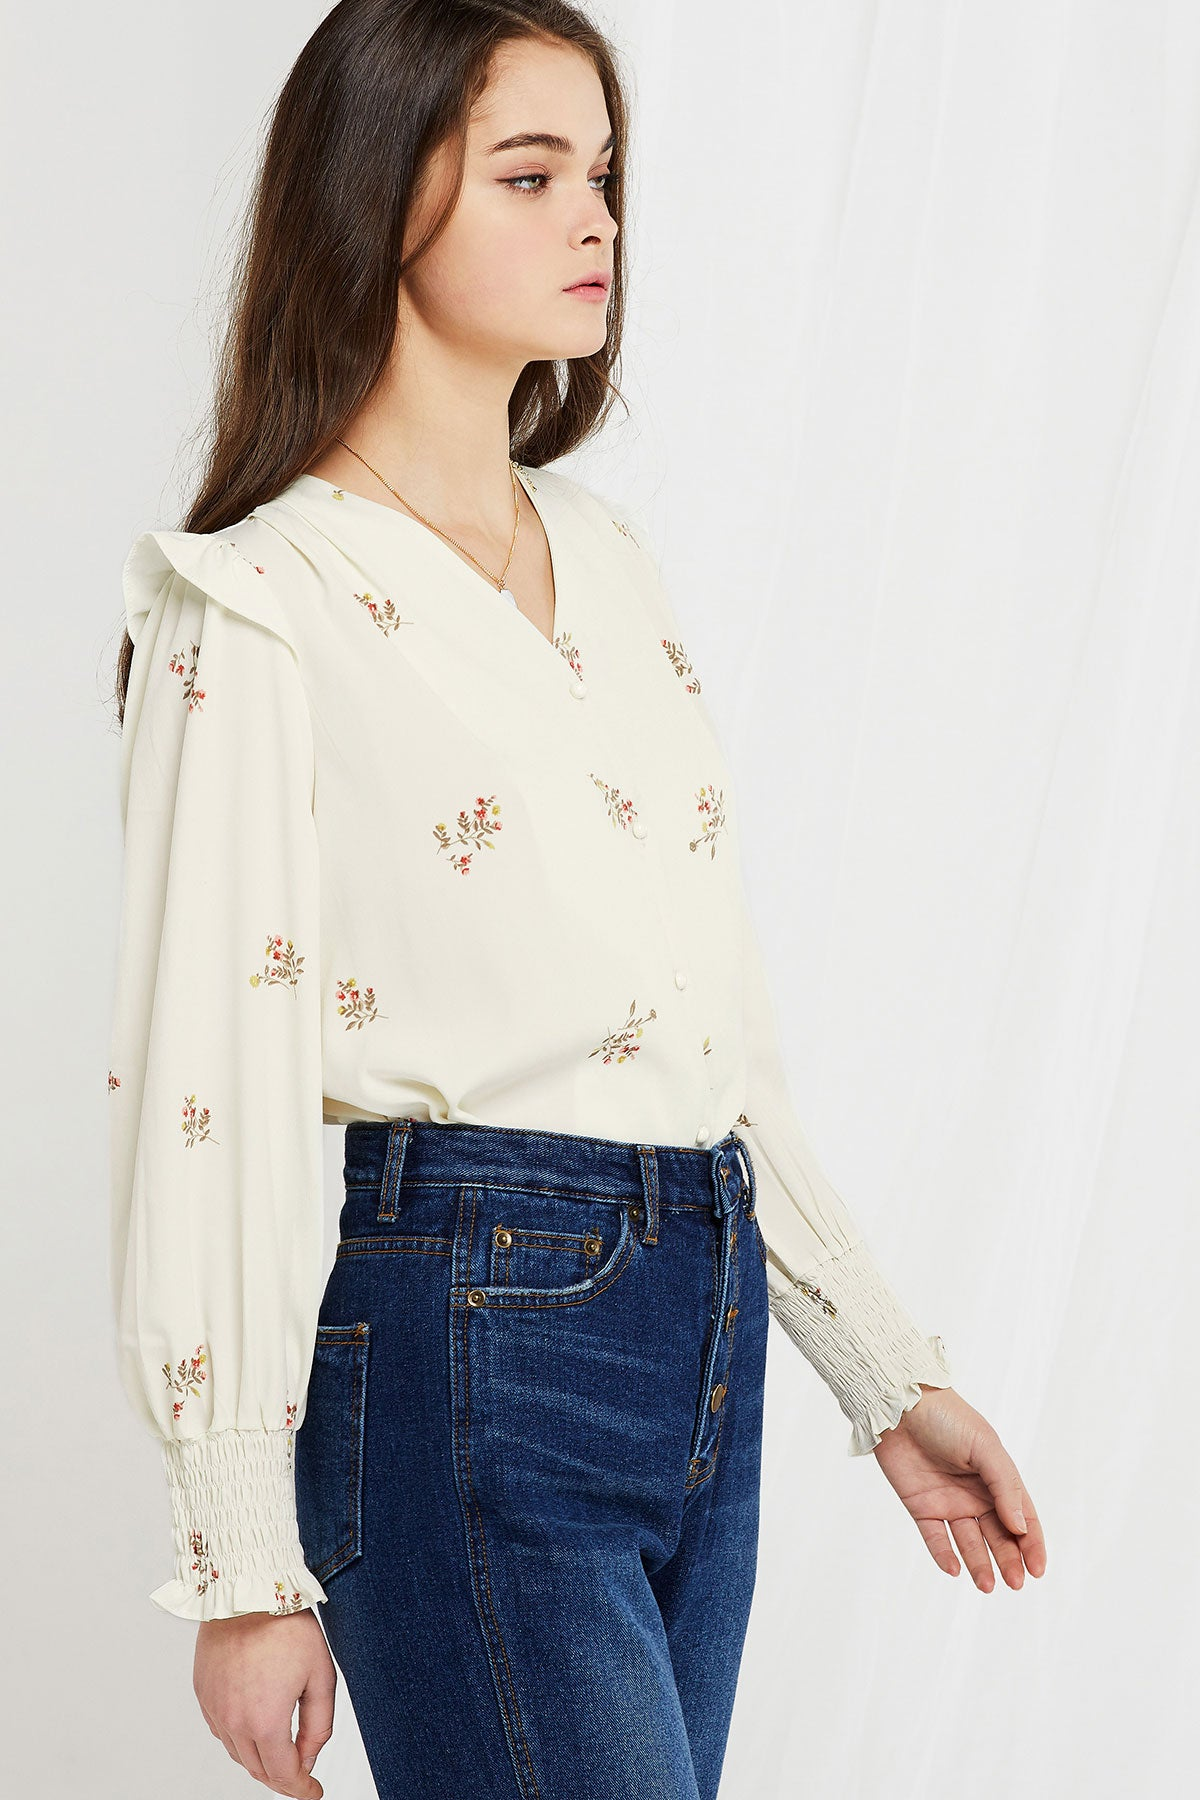 Karly Vintage Mood Blouse